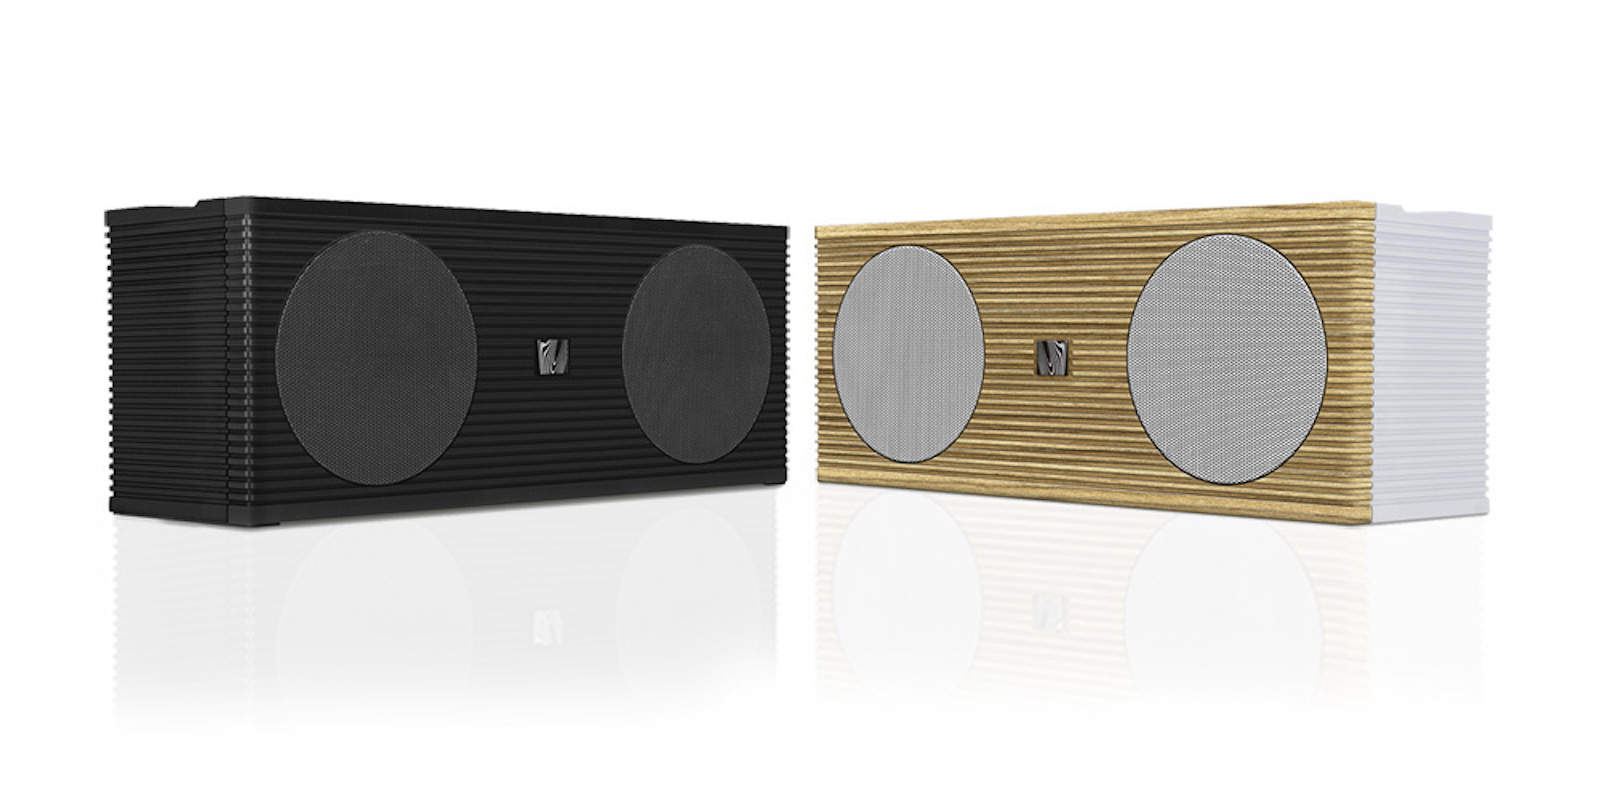 Carry your sounds around in style with this award winning Bluetooth speaker.